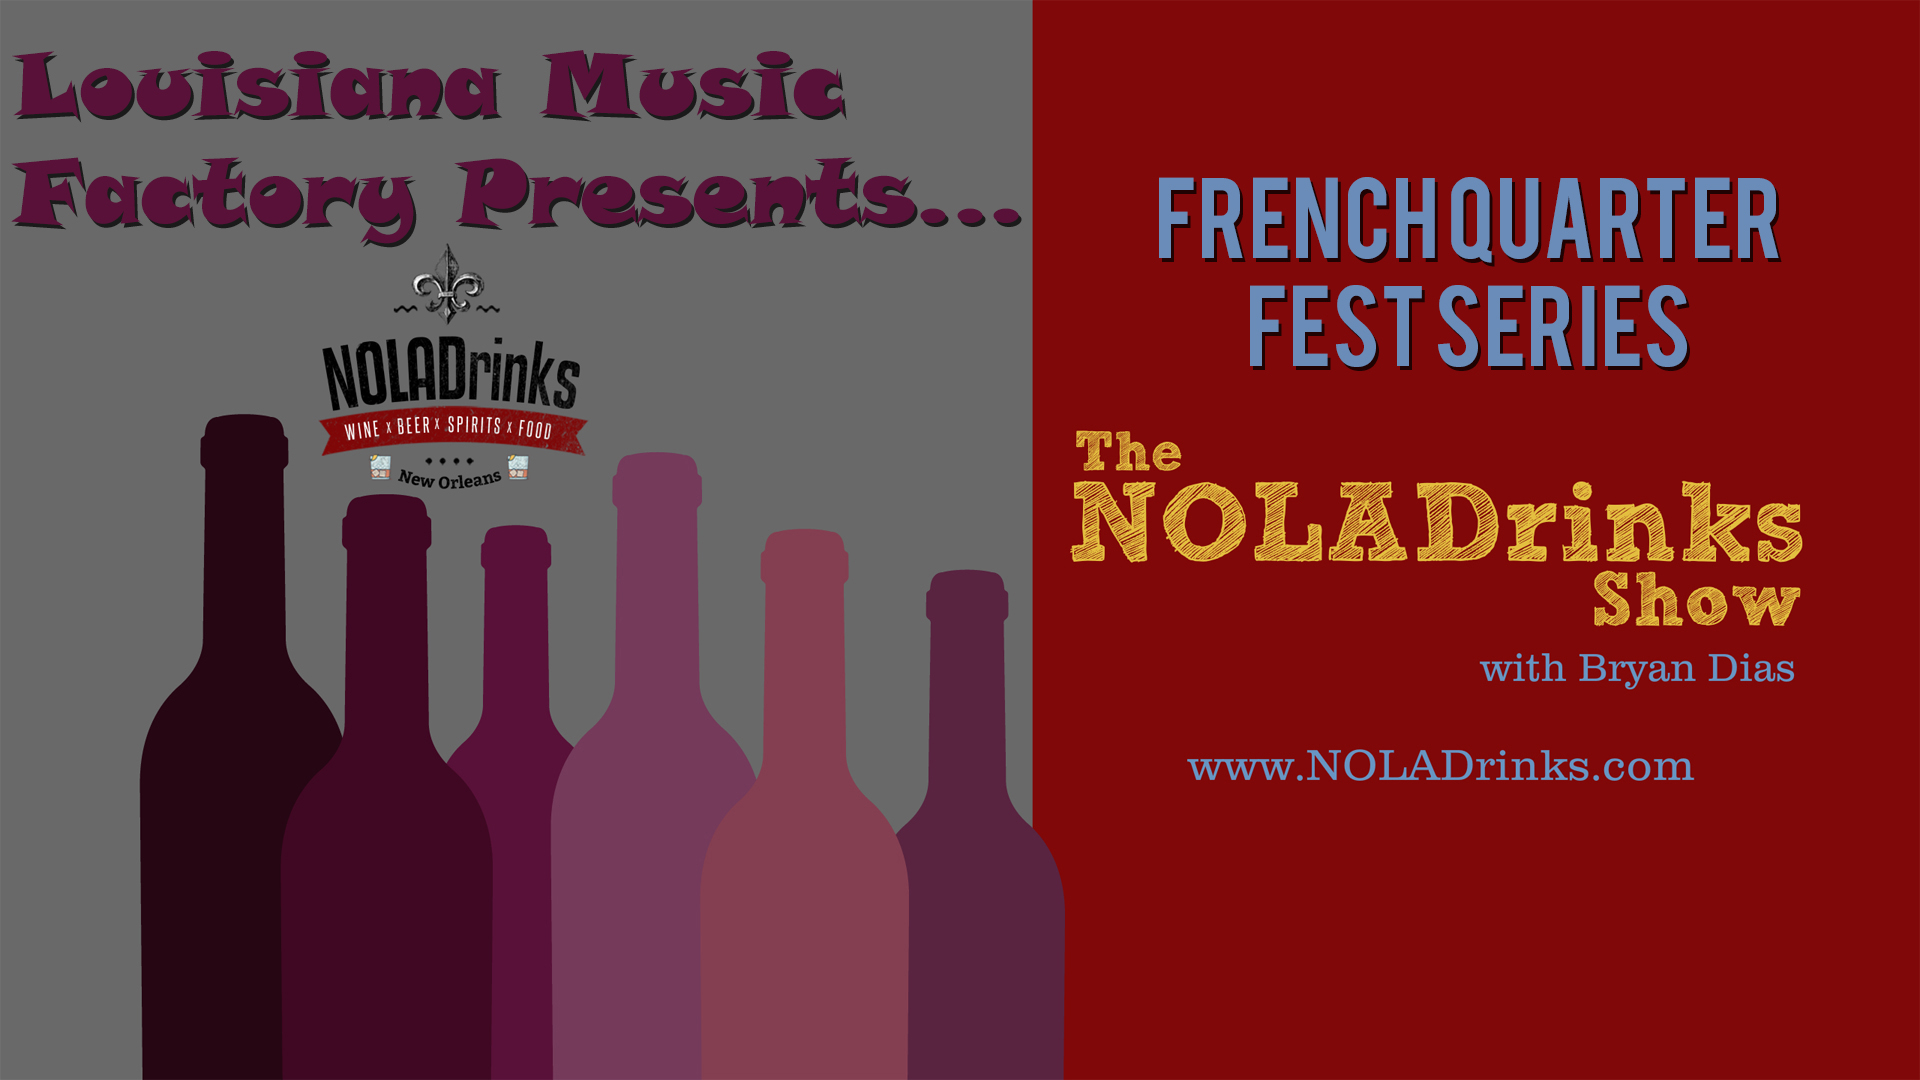 Louisiana Music Factory Presents - The NOLADrinks Show